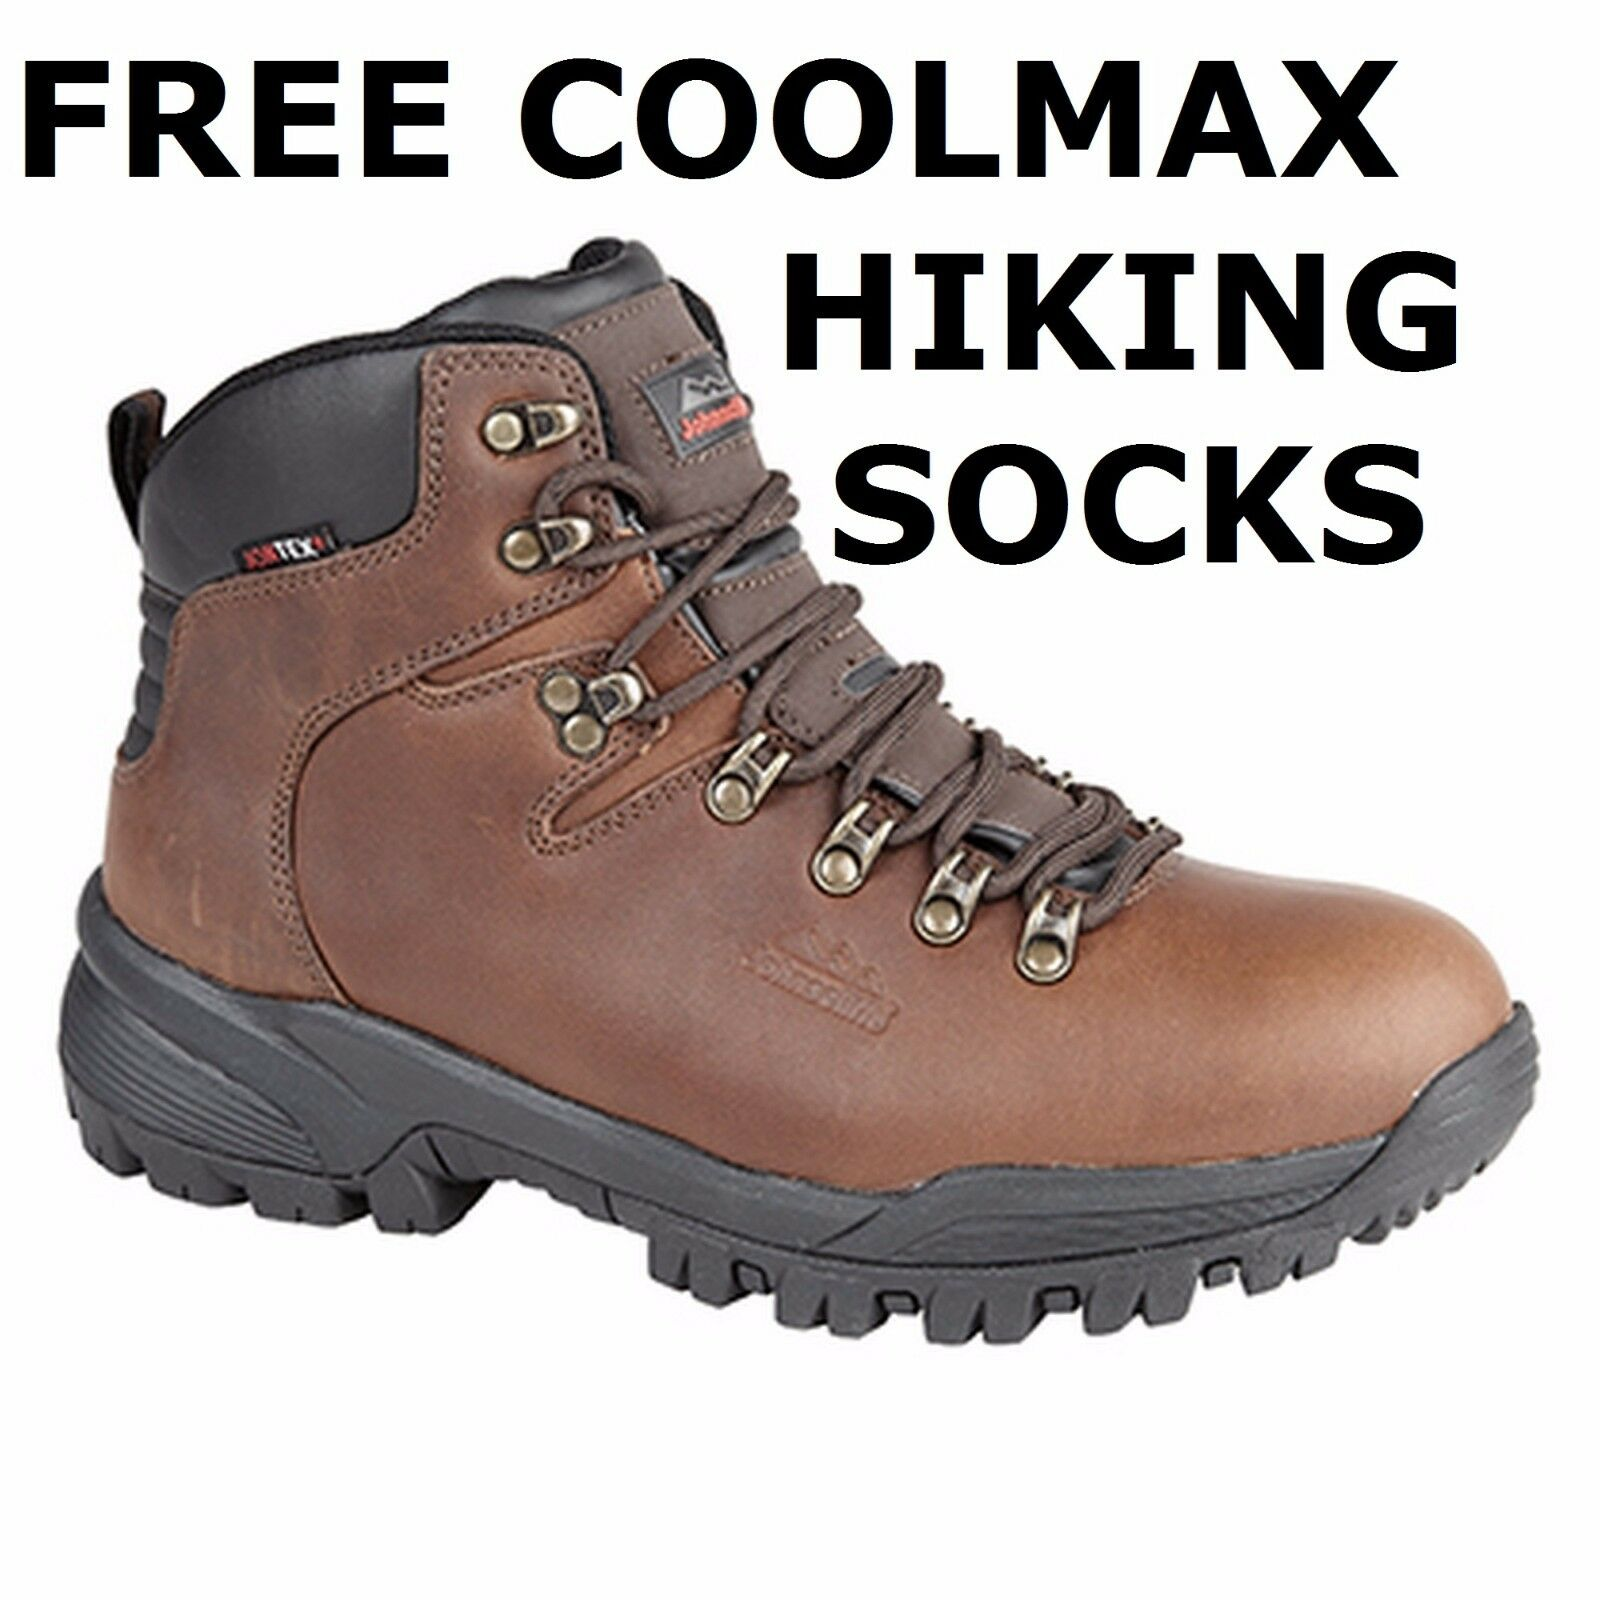 WATERPROOF & BREATHABLE HIKING JOHNSCLIFFE WALKING Stiefel HI GRIP SOLE JOHNSCLIFFE HIKING CANYON 52e4bf